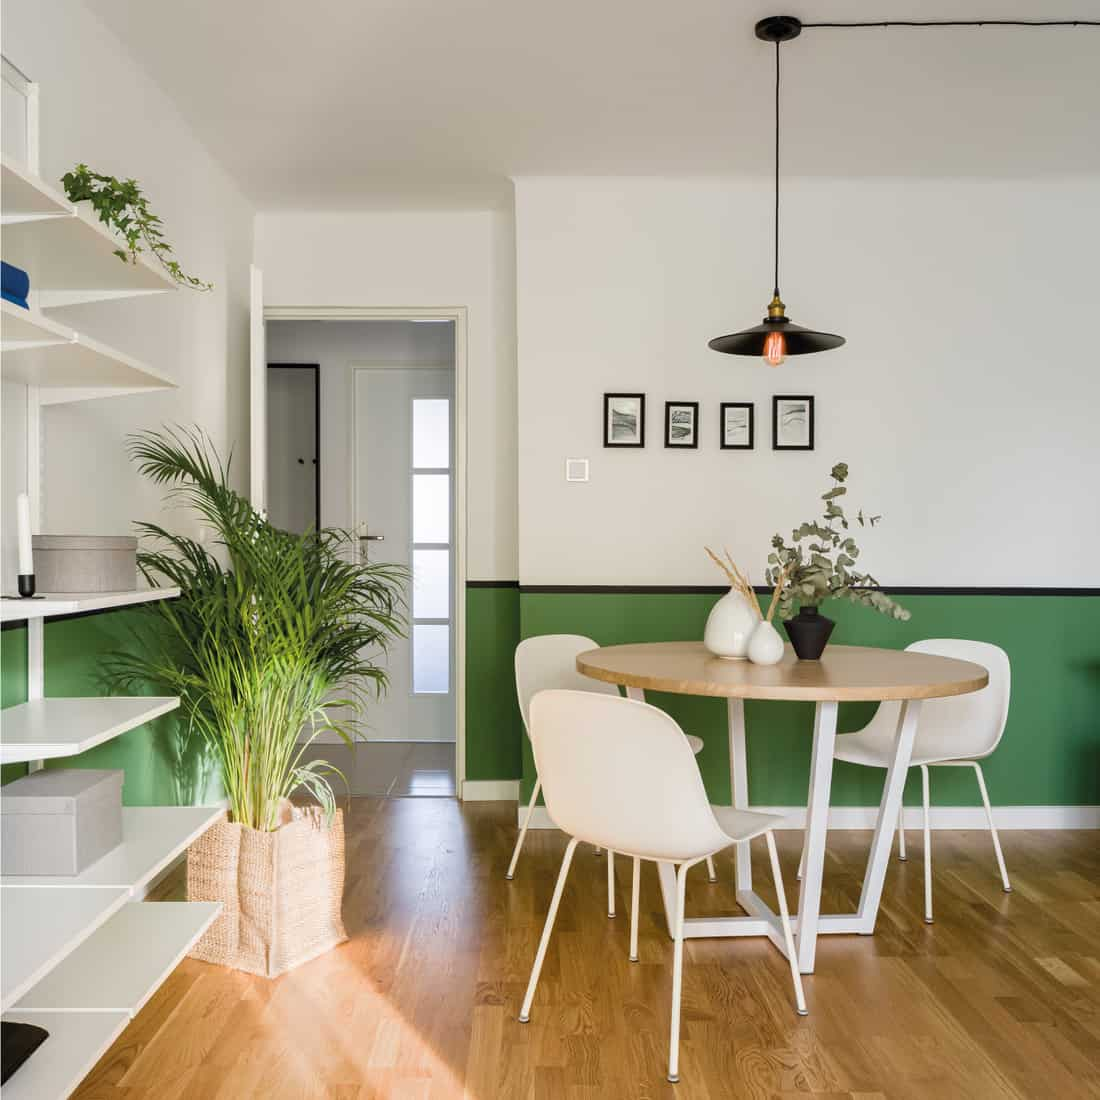 Wooden dining table, white and green walls, wooden floor, and chair rail molding